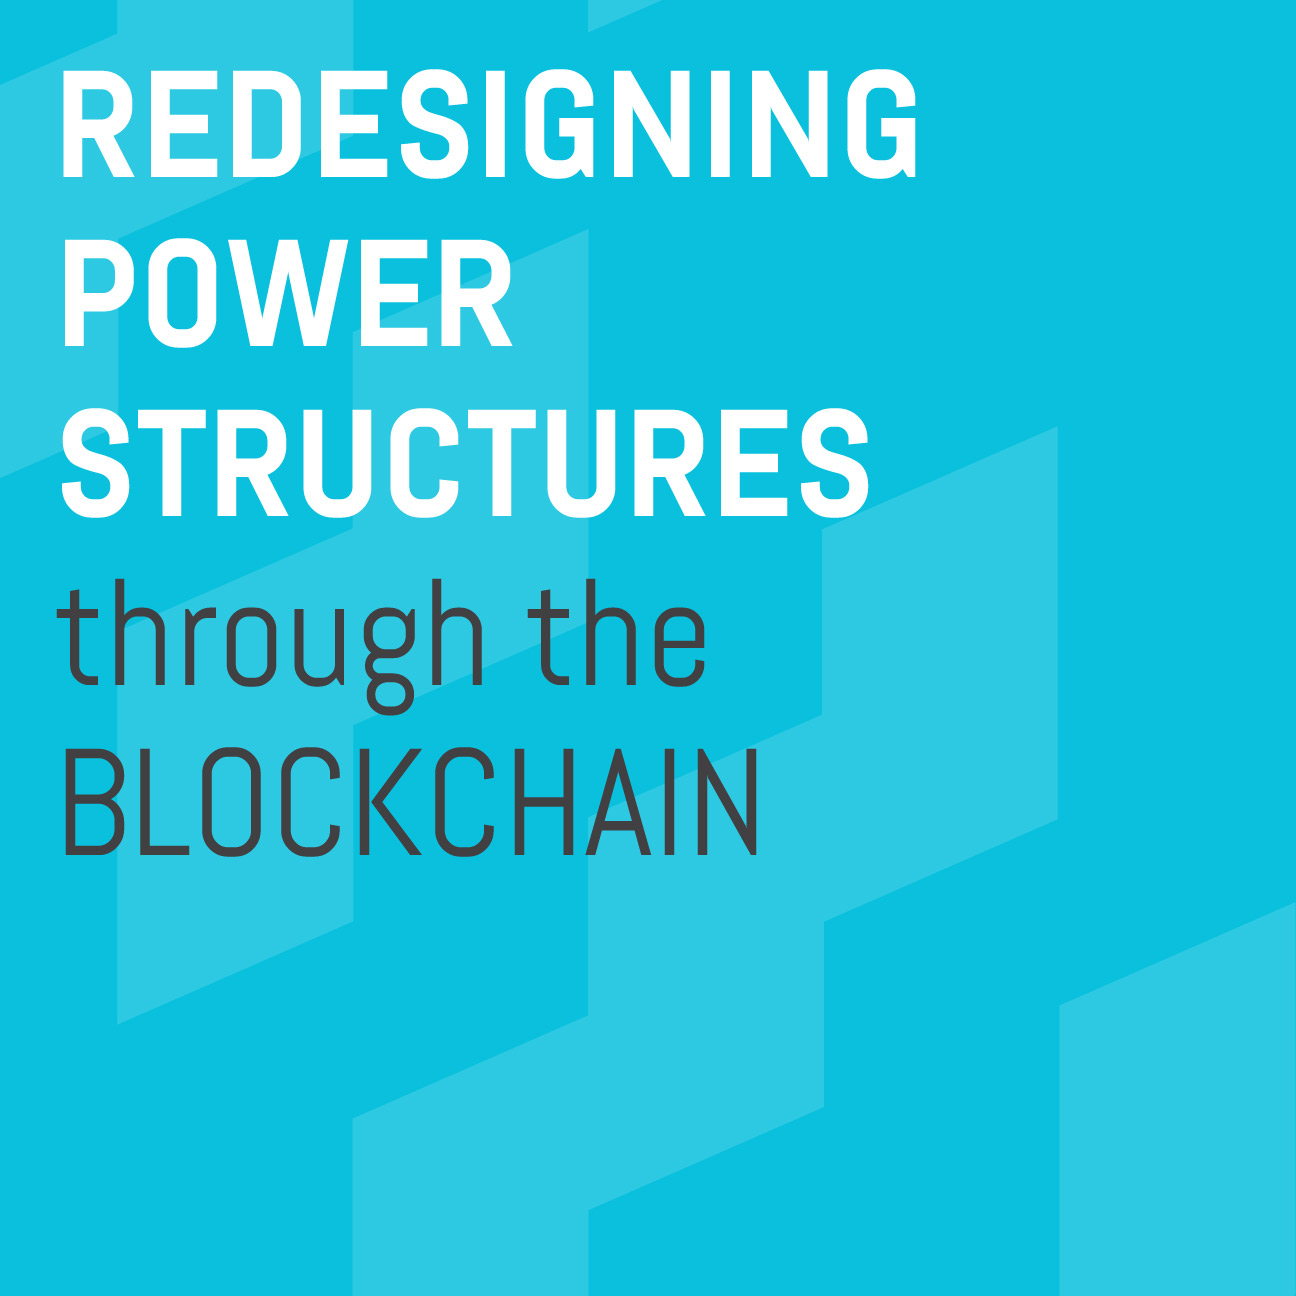 Redesigning-Power-Structures.jpg